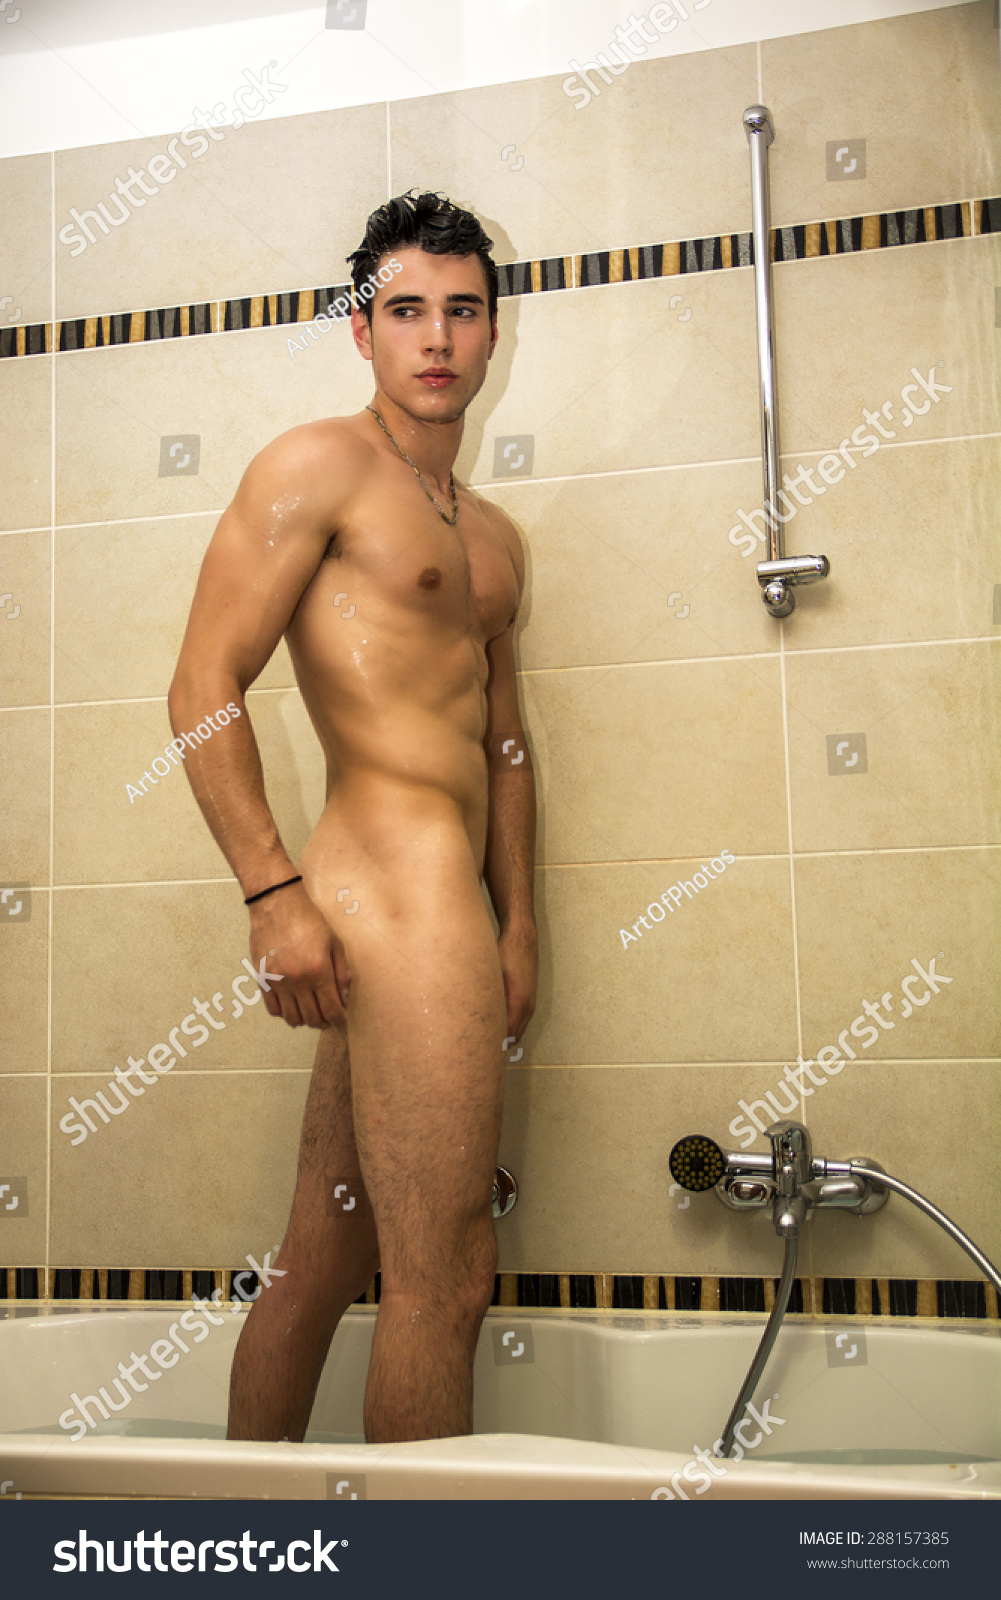 gay porn men taking showers